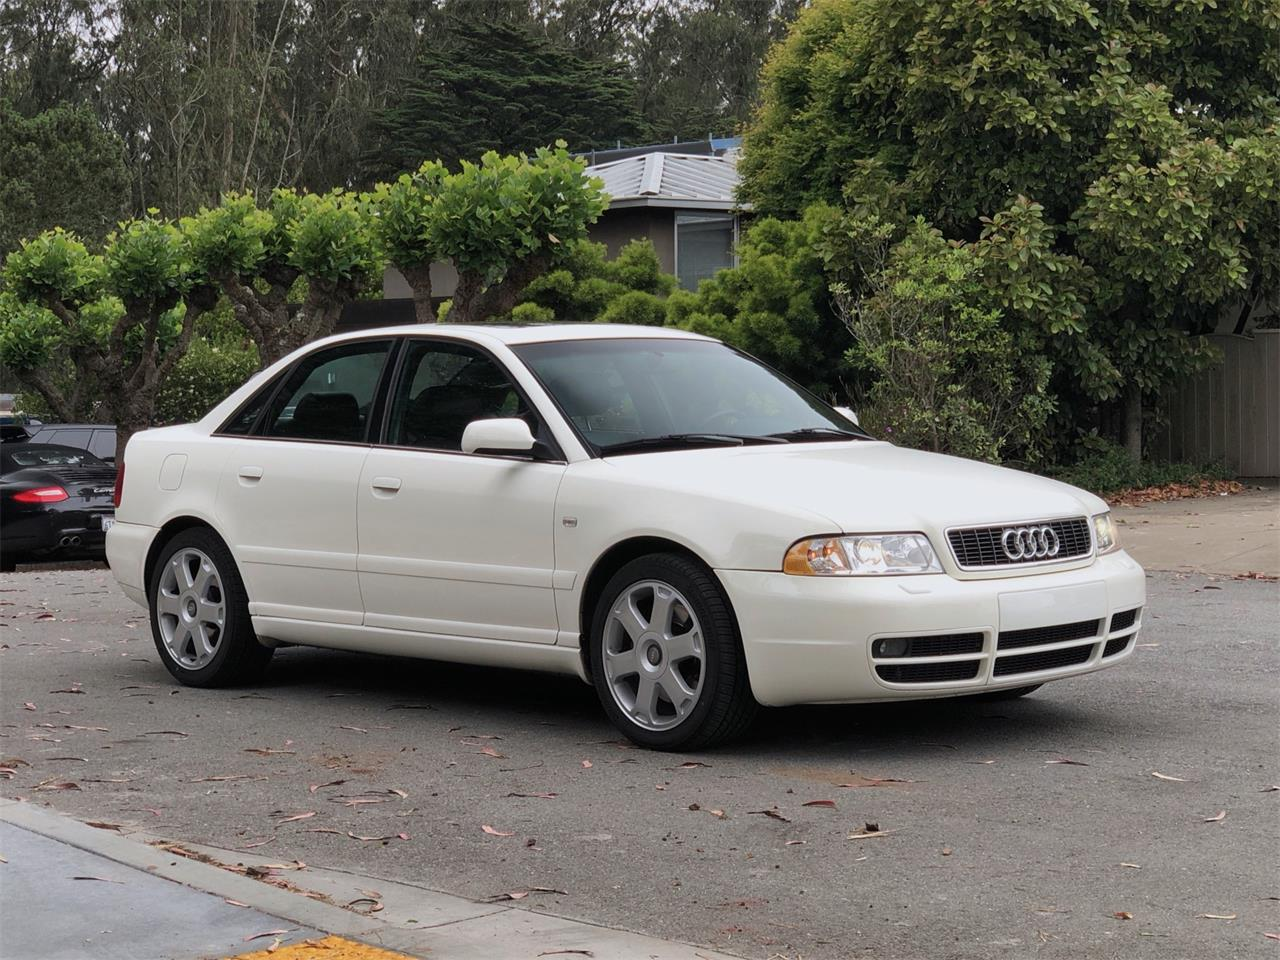 Large Picture of 2001 Audi S4 Auction Vehicle Offered by Bring A Trailer - QDIC